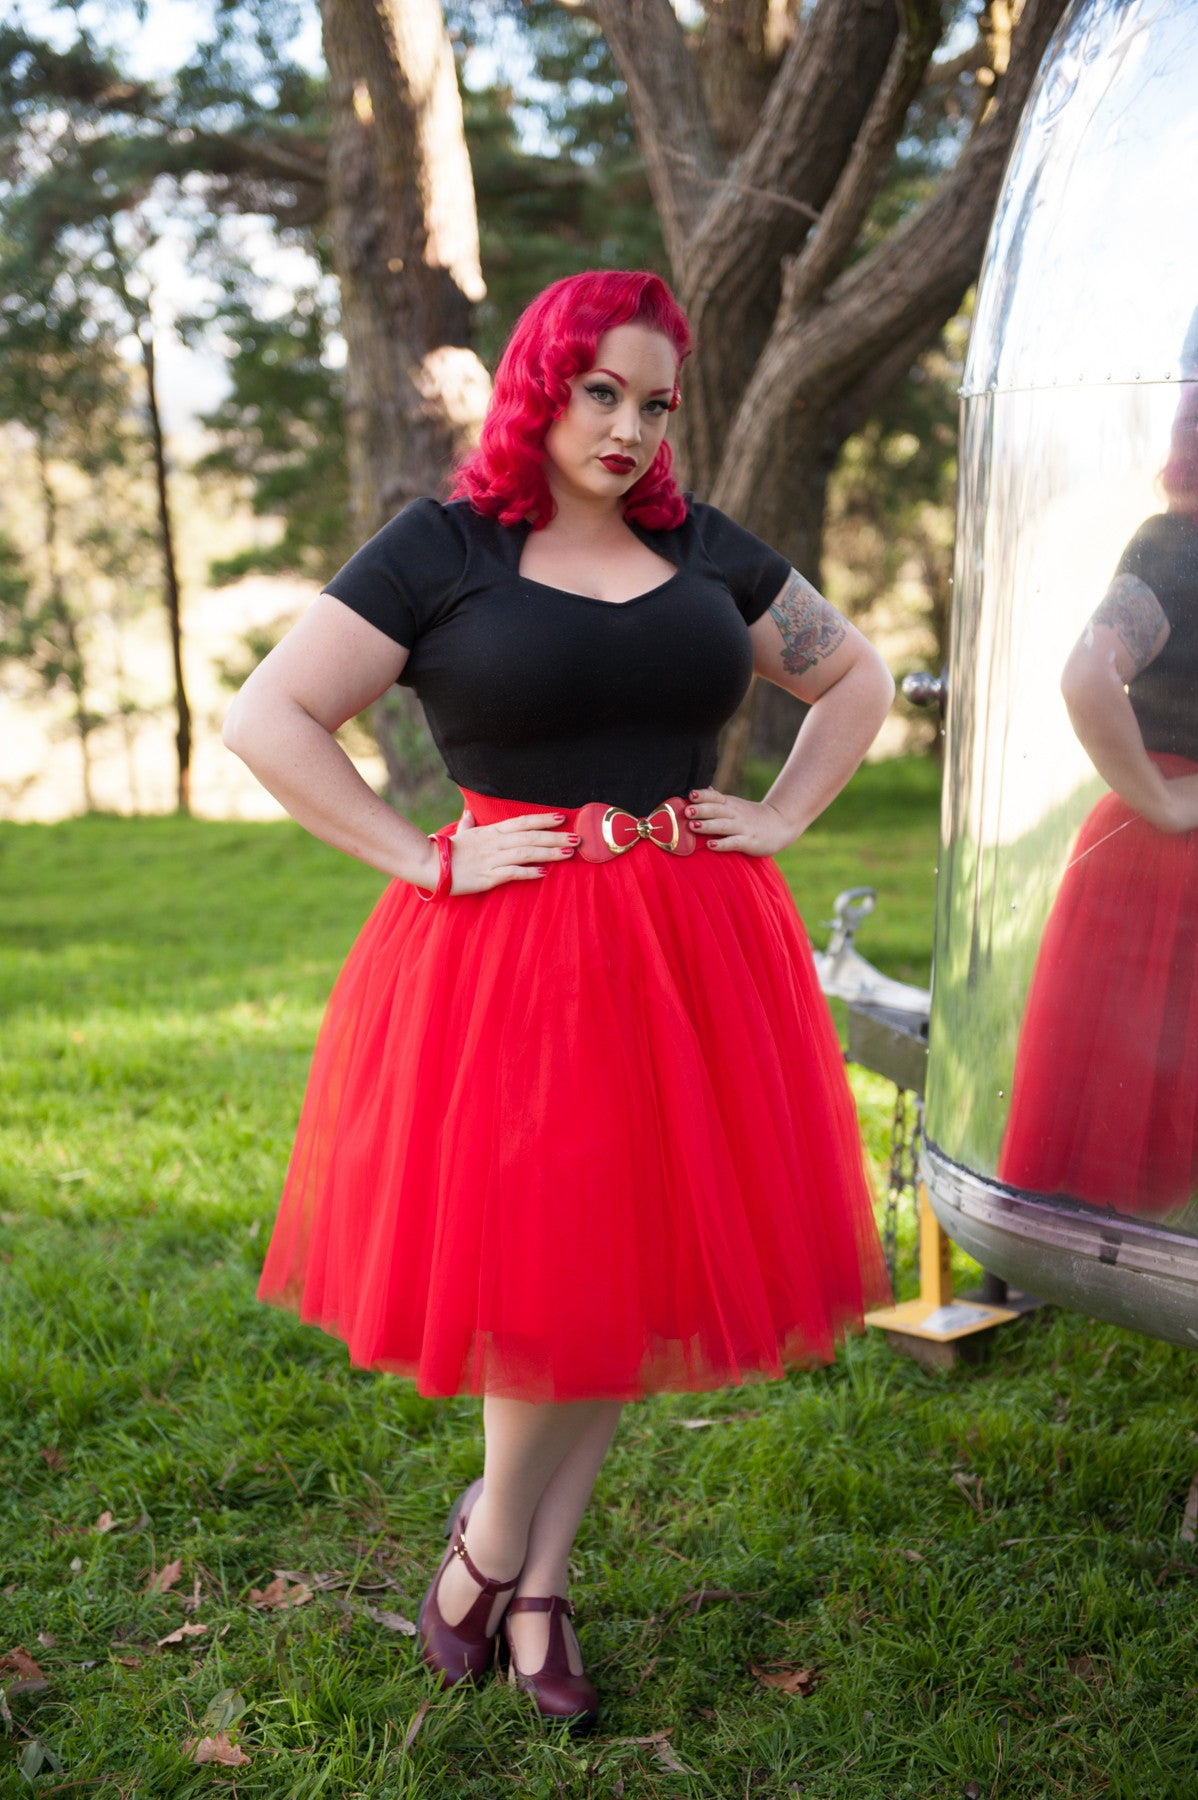 Nostalgia Now - Red Tutu featured with Pinup bow belt